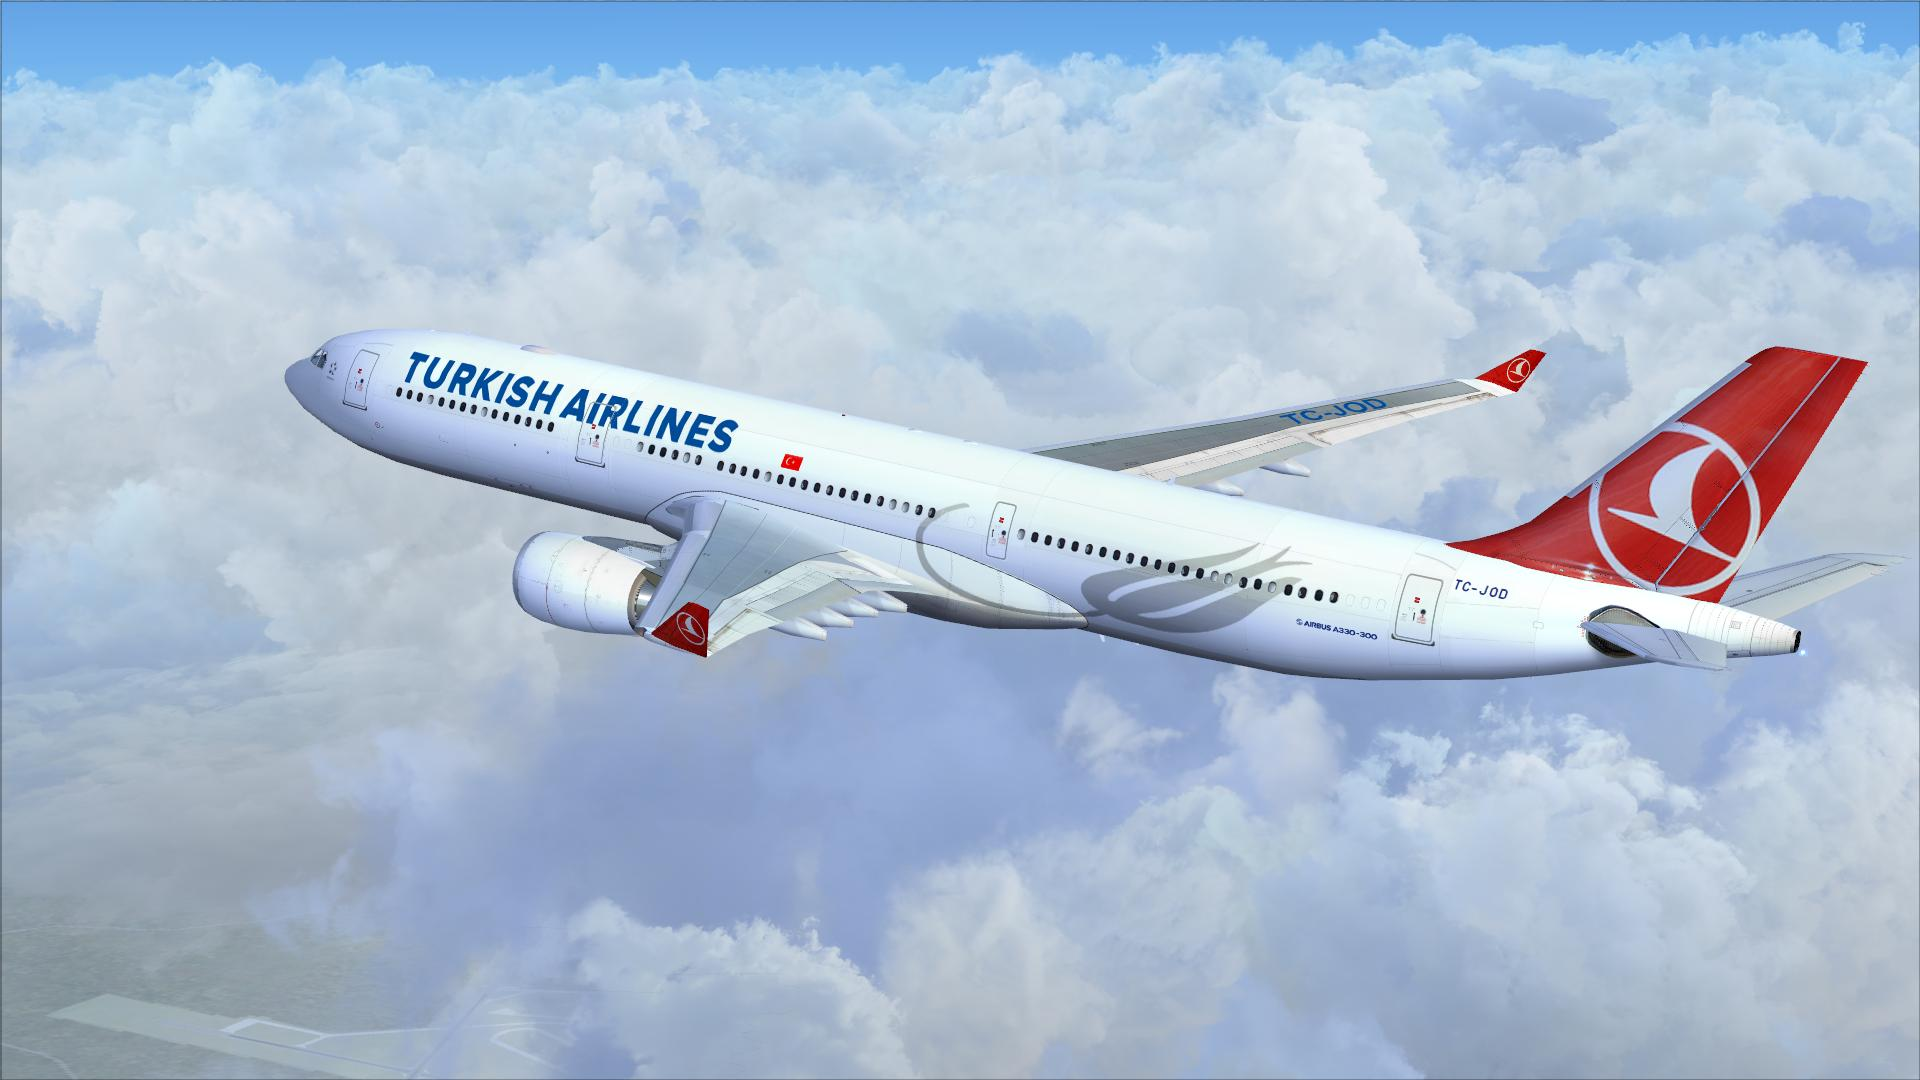 Turkish Airlines-mo-duong-bay-viet-nam-tho-nhi-ky